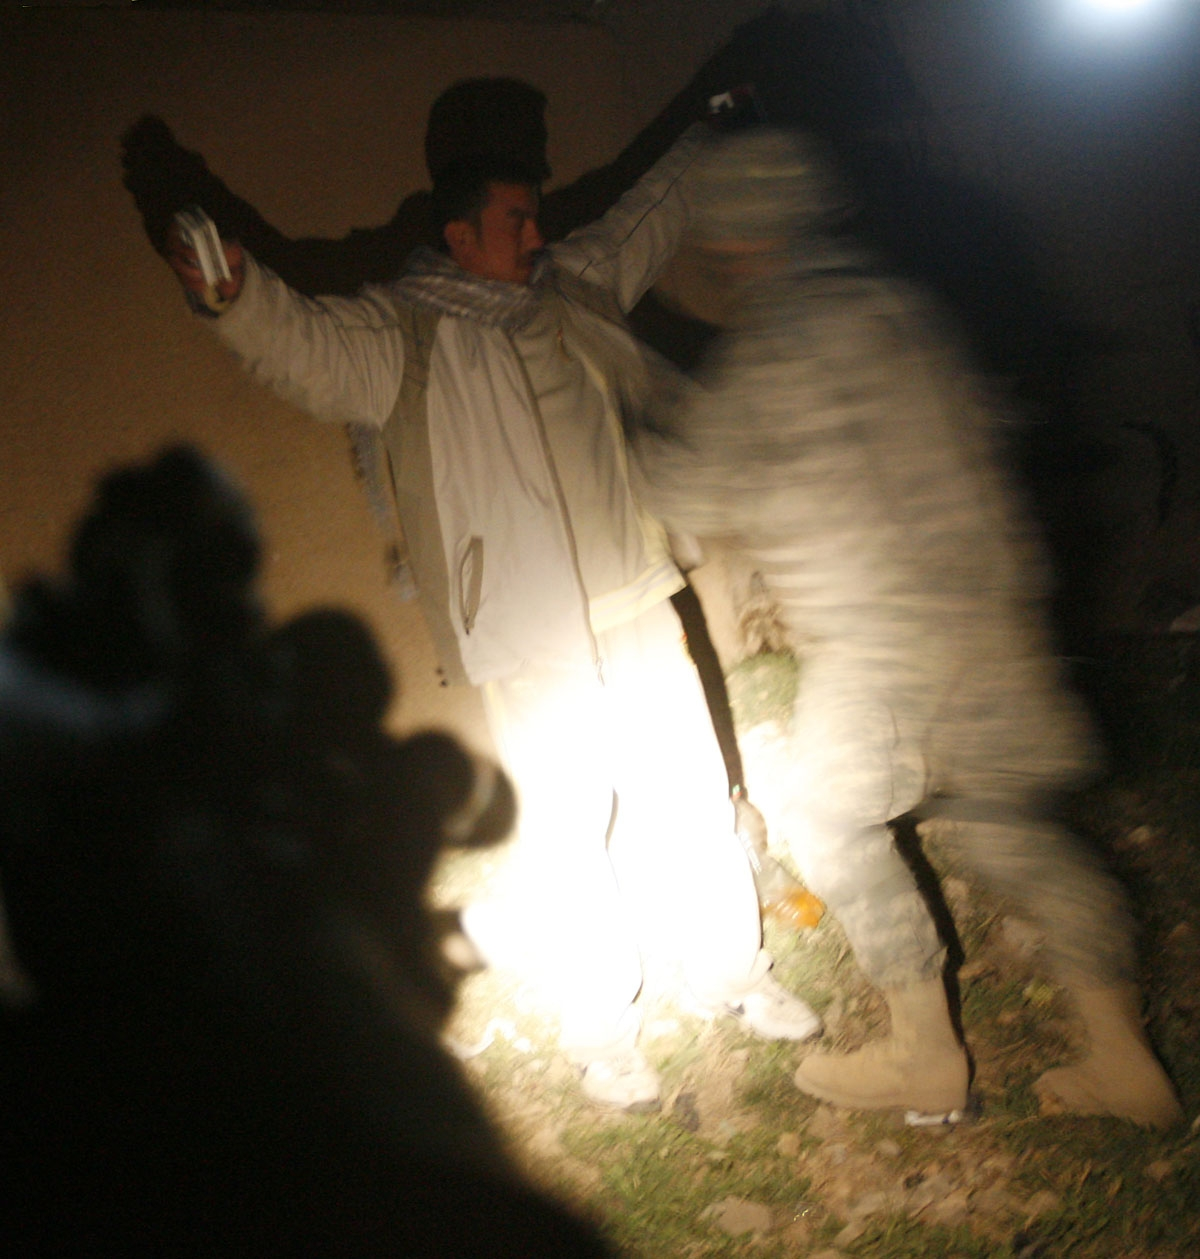 A US soldier from the 2nd Battallion 12th Field Artillery Regiment, 4-2 SBCT, frisks a man during a night patrol in the town of Baquba, 20 kms northeast of Baghdad, on February 23, 2008. T